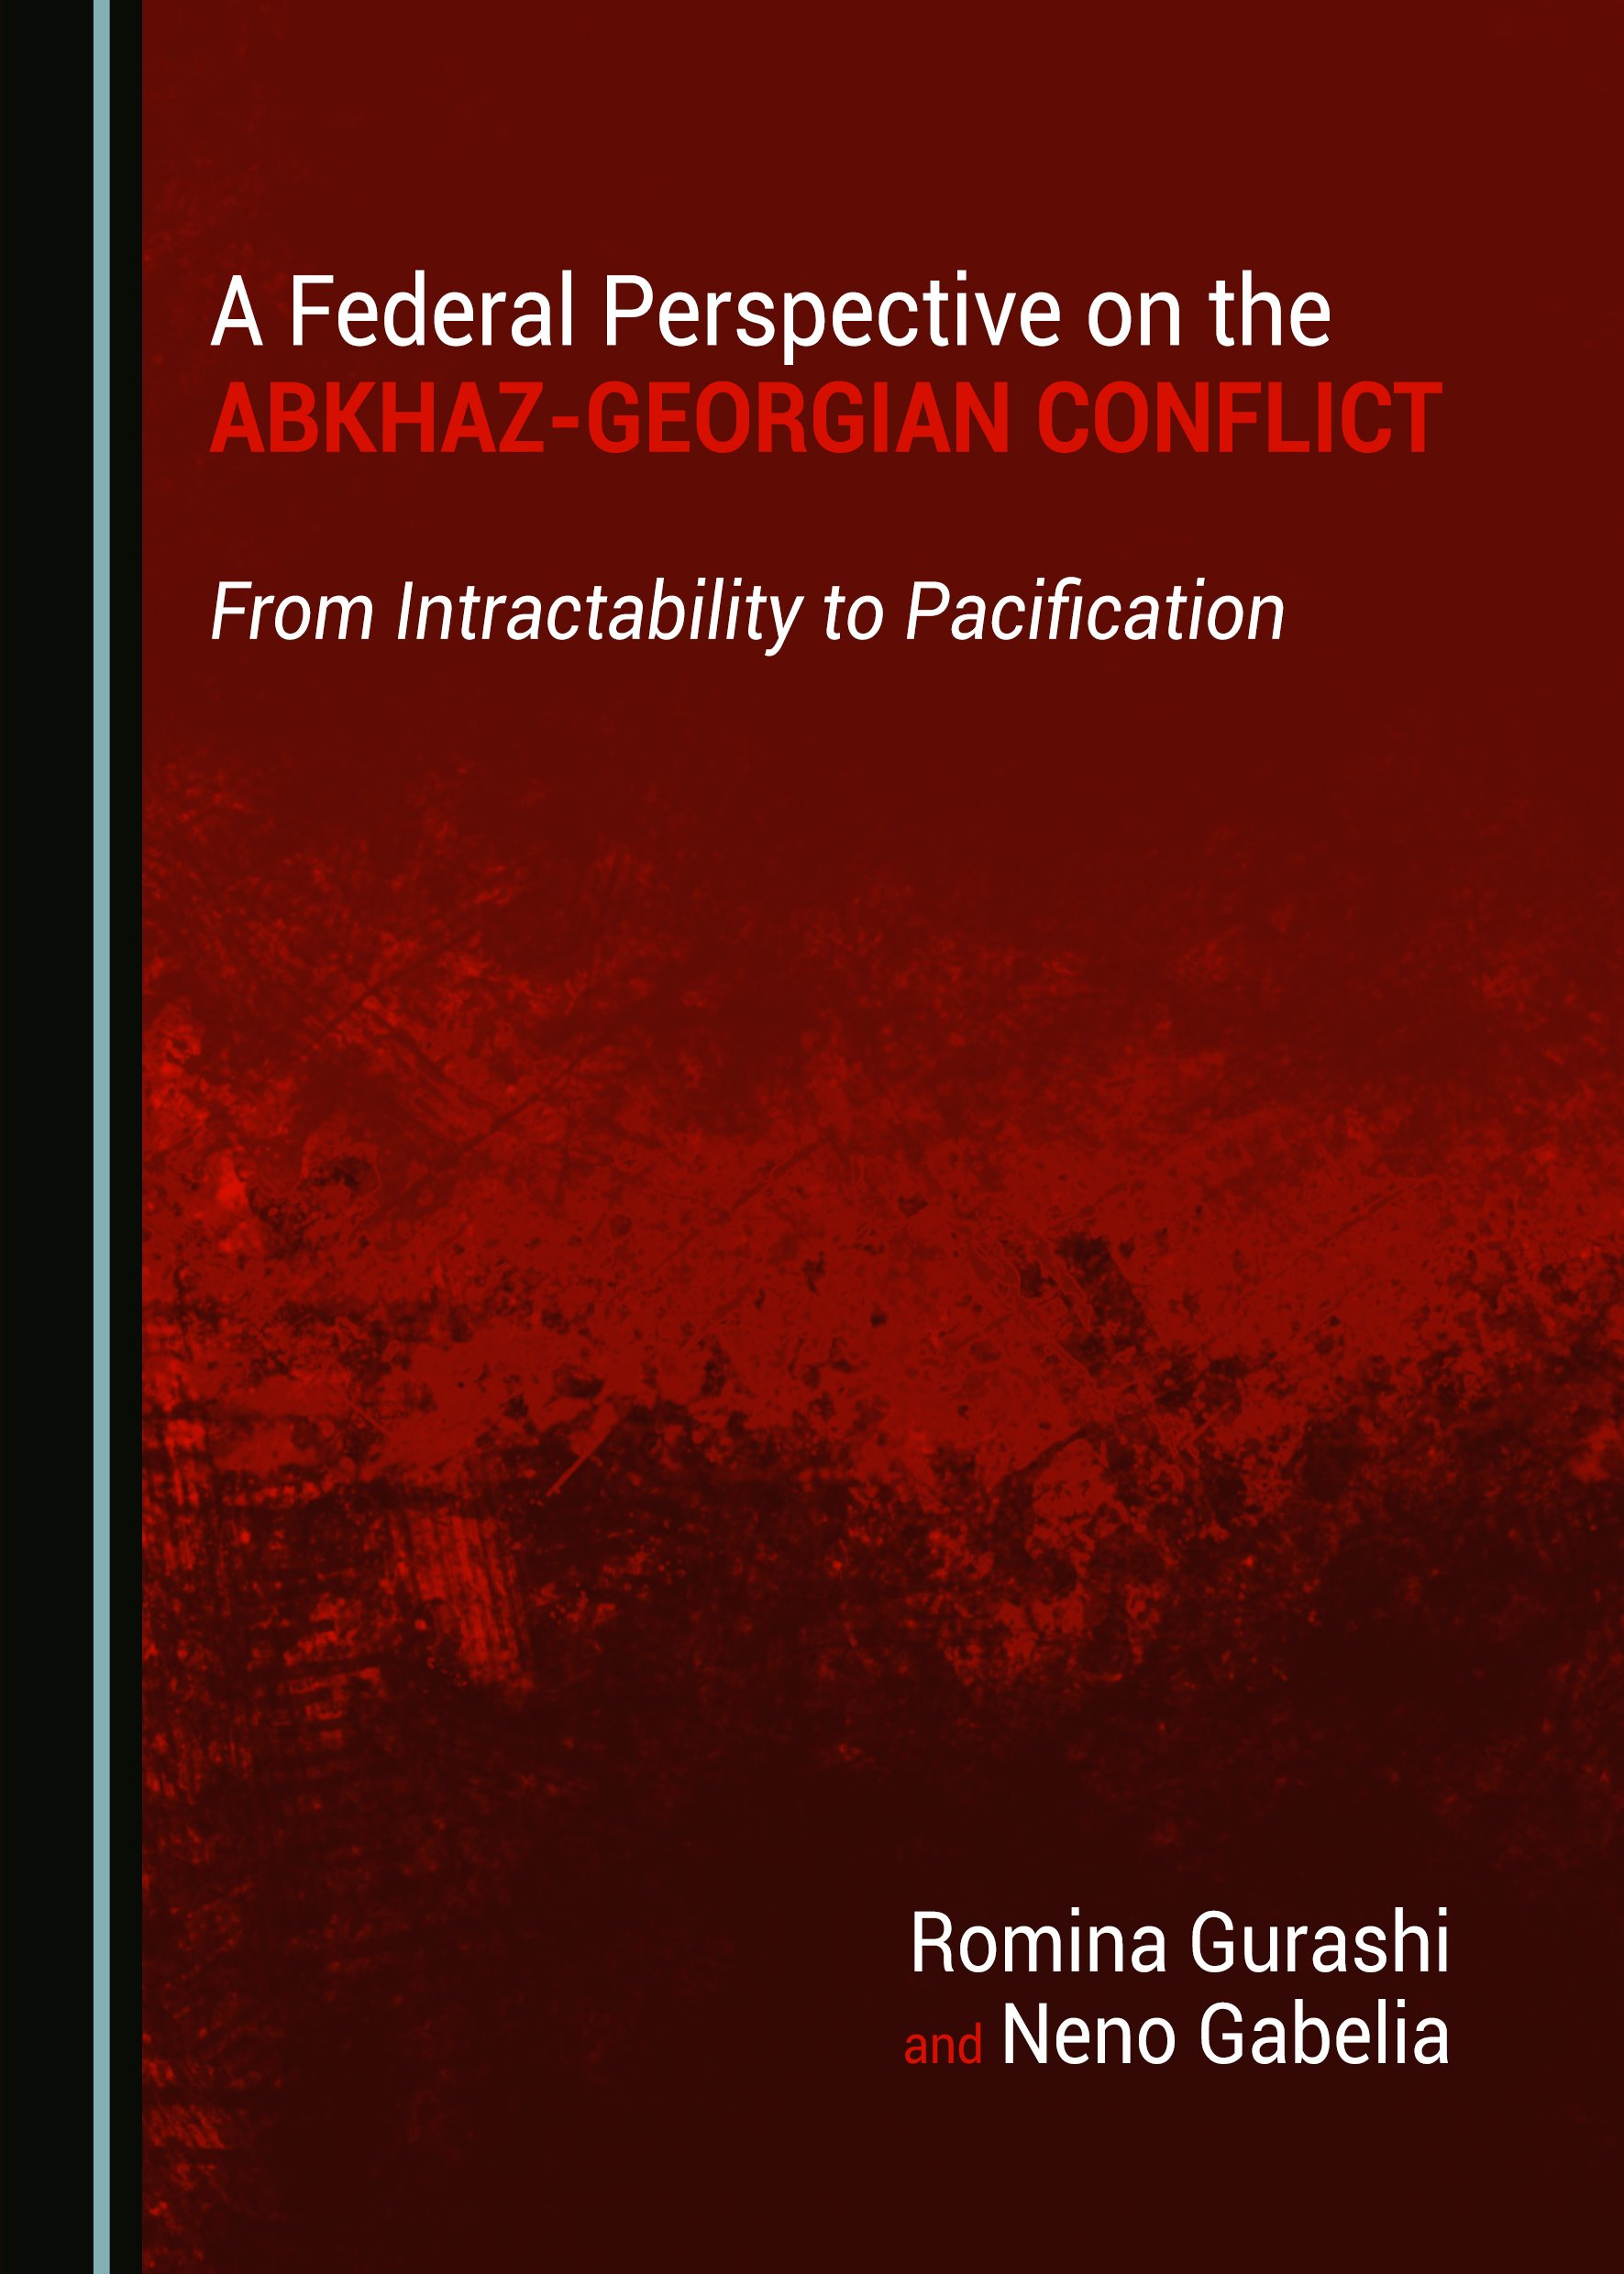 A Federal Perspective on the Abkhaz-Georgian Conflict: From Intractability to Pacification